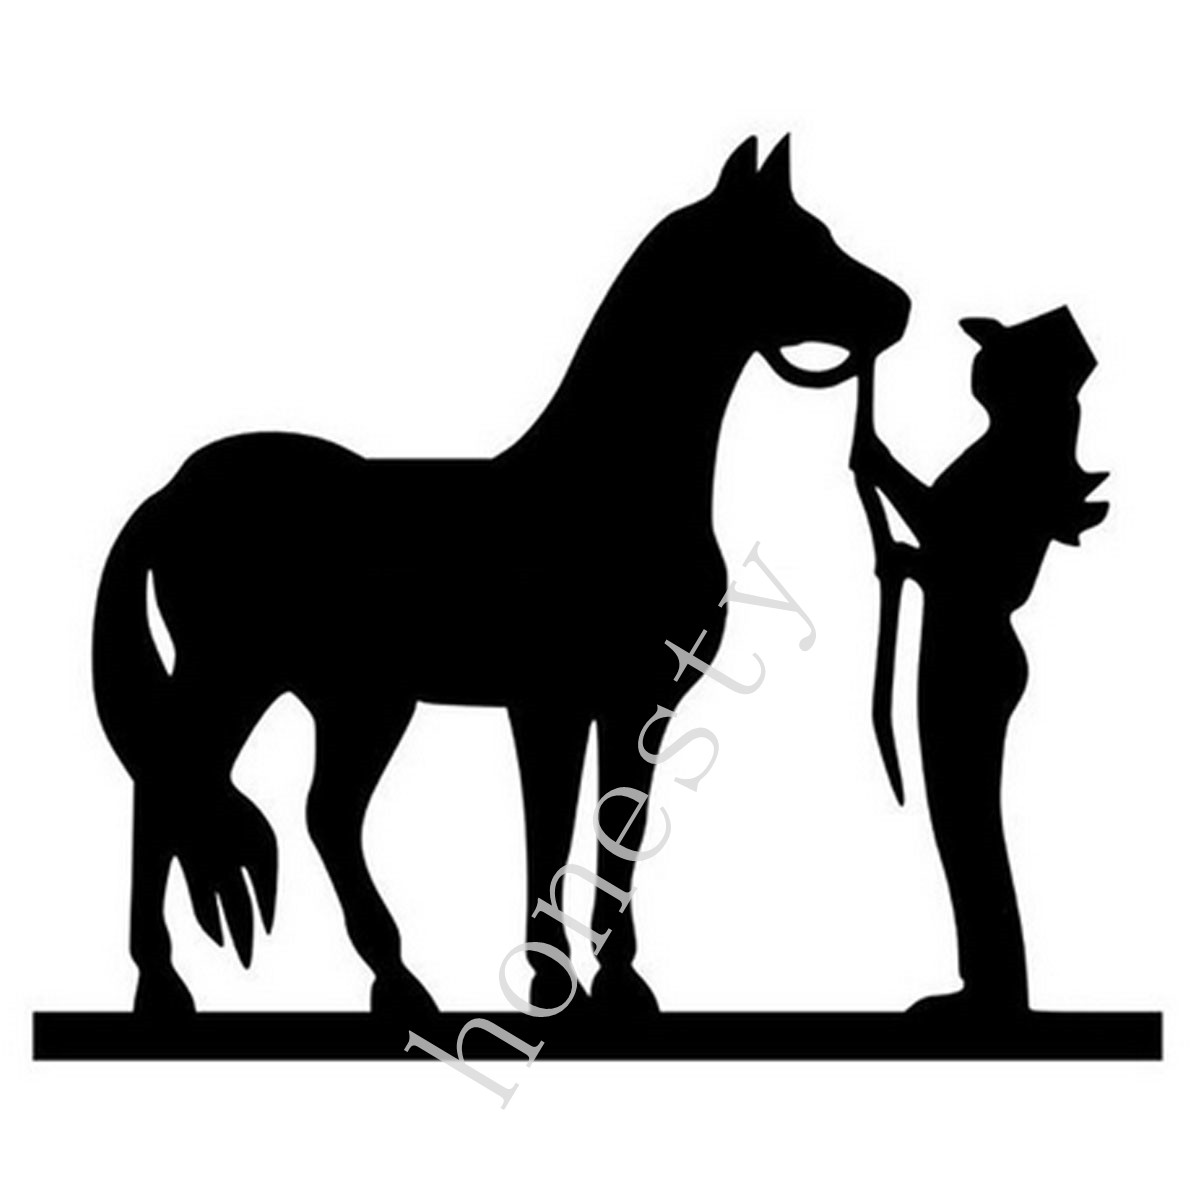 Cow Wall Stickers Cowgirl And Horse Cartoon Stickers Motorcycle Decals Car